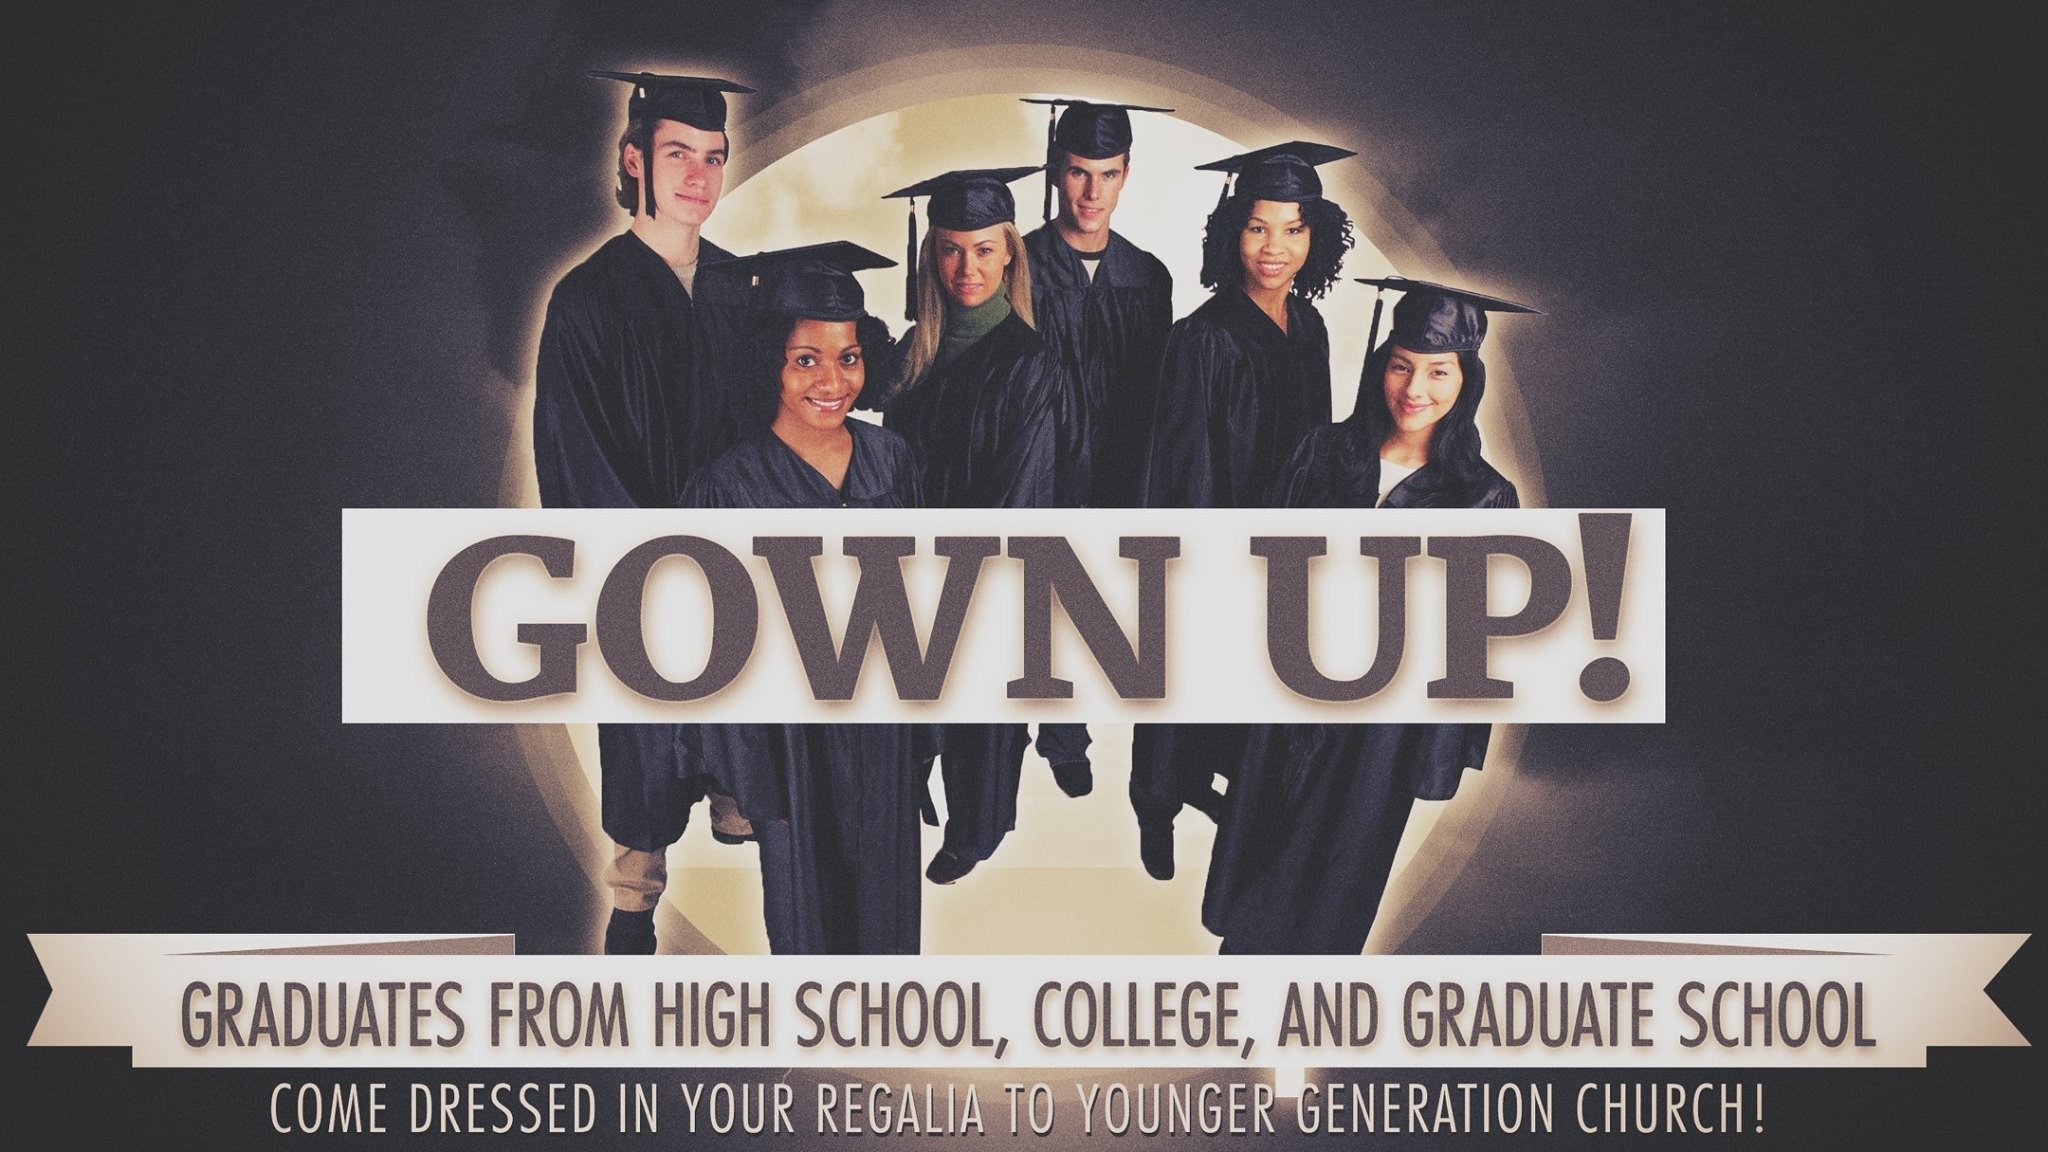 GOWN UP SABBATH @ YG   This Sabbath, May 25th, 10:15AM at Younger Generation Church, we're inviting all our 2018-2019 graduates from junior high, high school, college, university, and graduate school to come to YG in your cap and gown. We want to celebrate your grand accomplishment and challenge you to commence into GOD's great adventure for your life. ygchurch.com